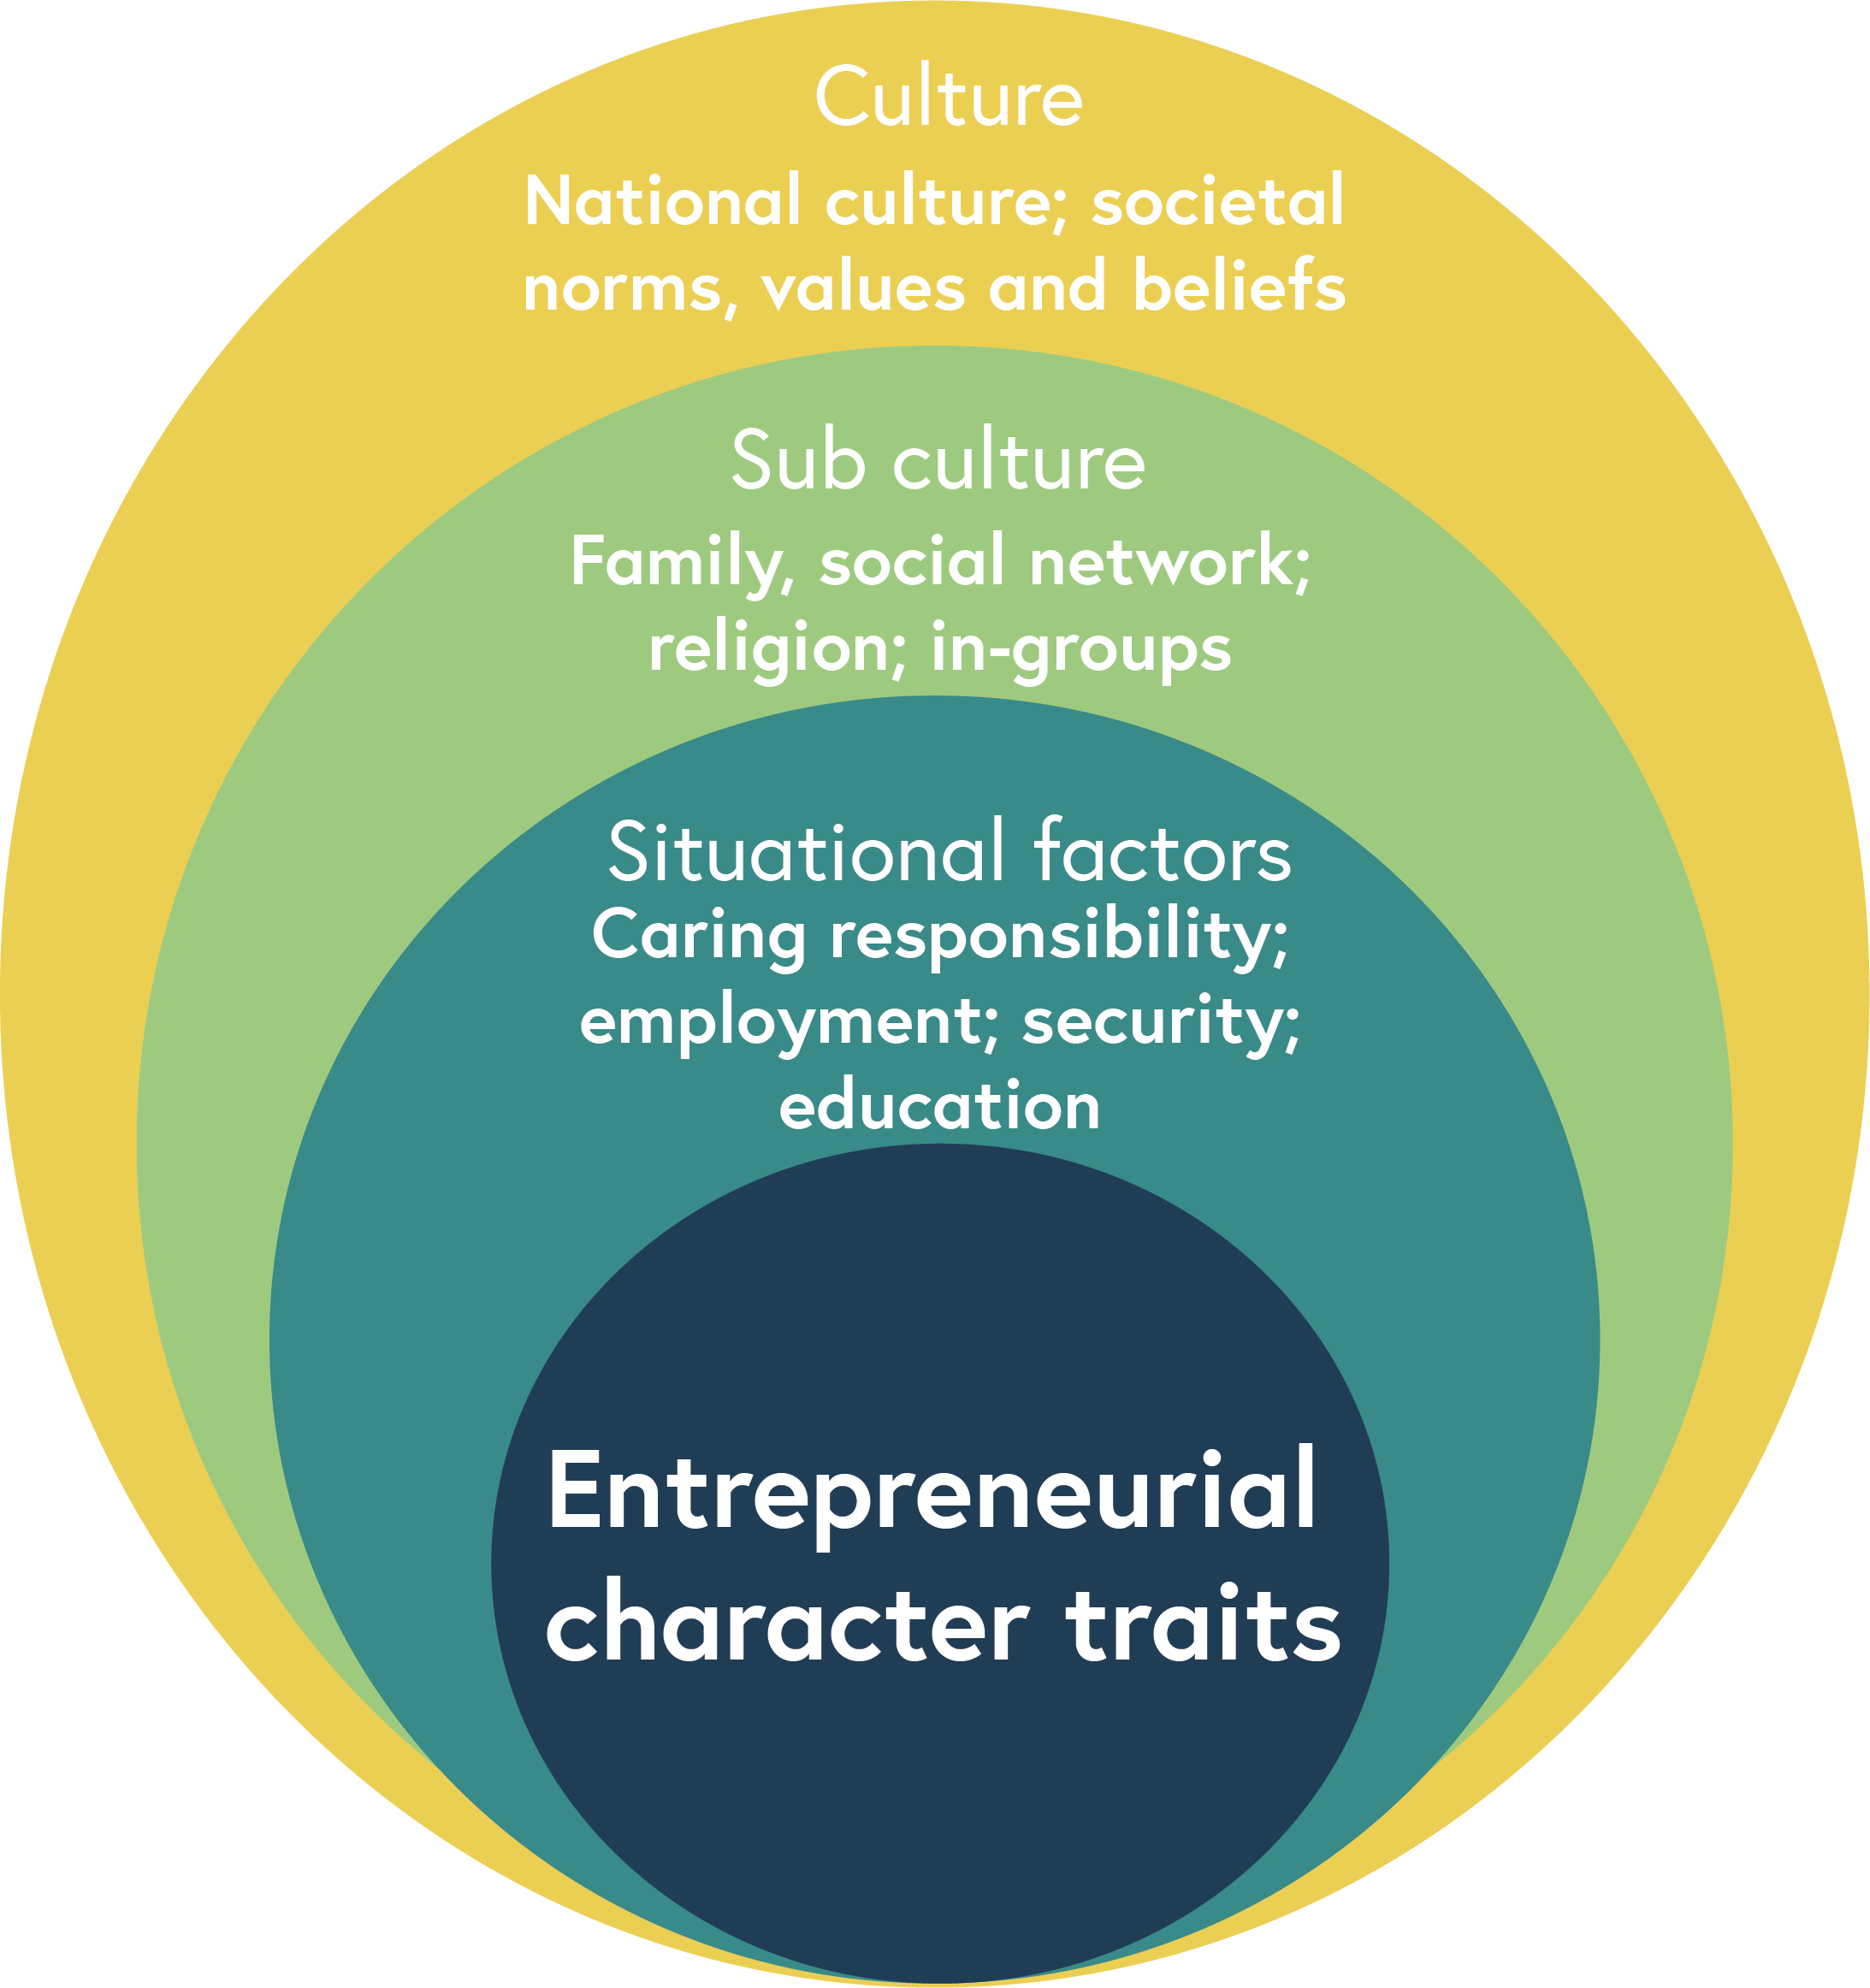 A diagram displaying how entrepreneurial character traits are shaped by culture, sub cultures and situational factors